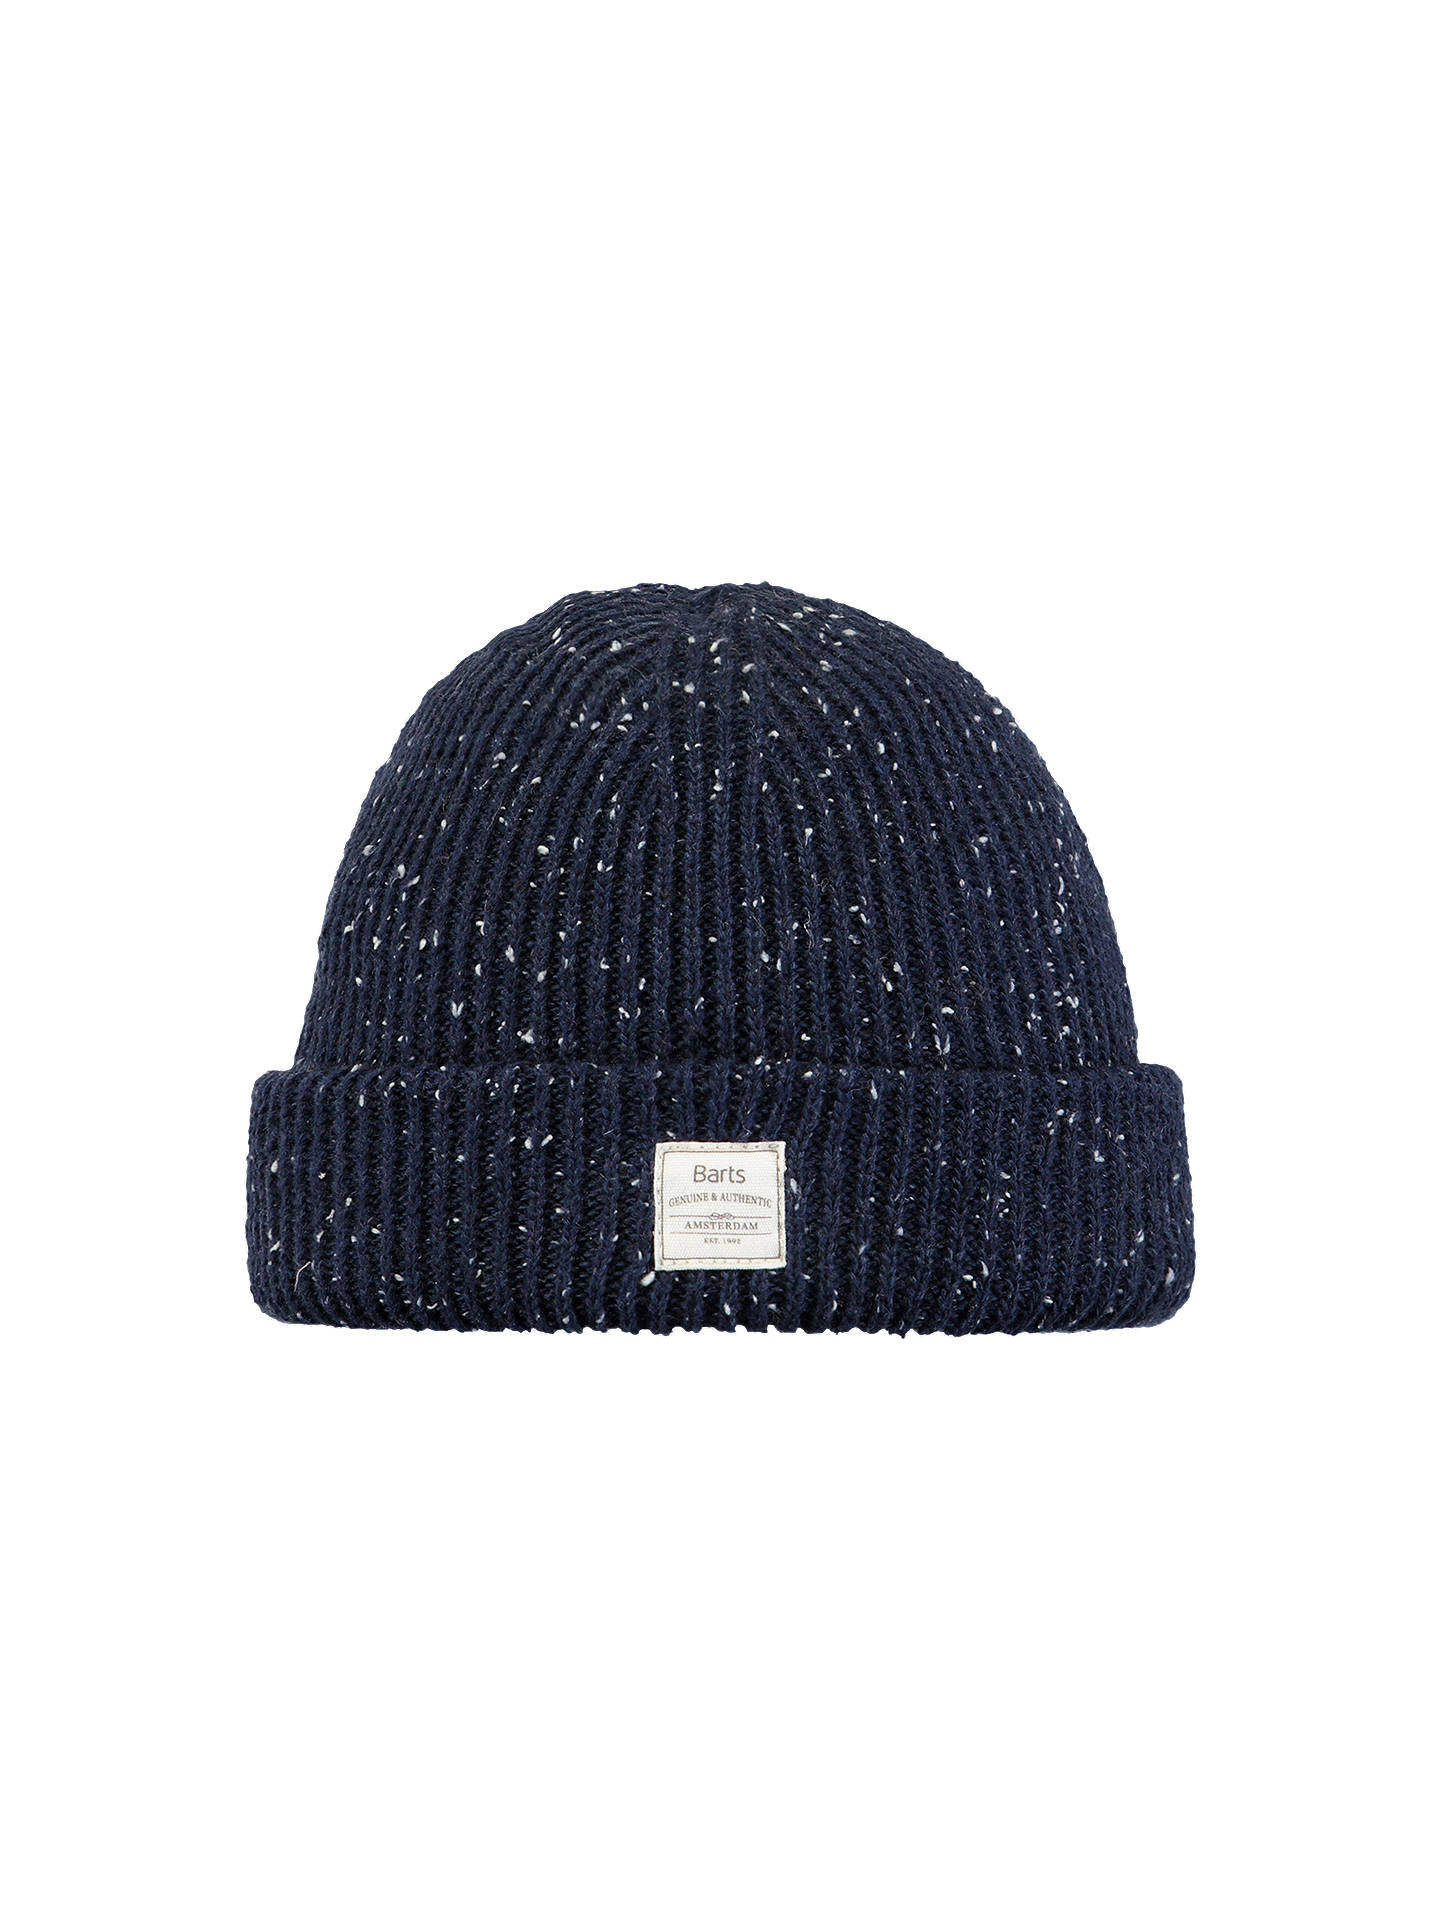 BuyBarts Atlas Beanie, One Size, Navy Blue Online at johnlewis.com